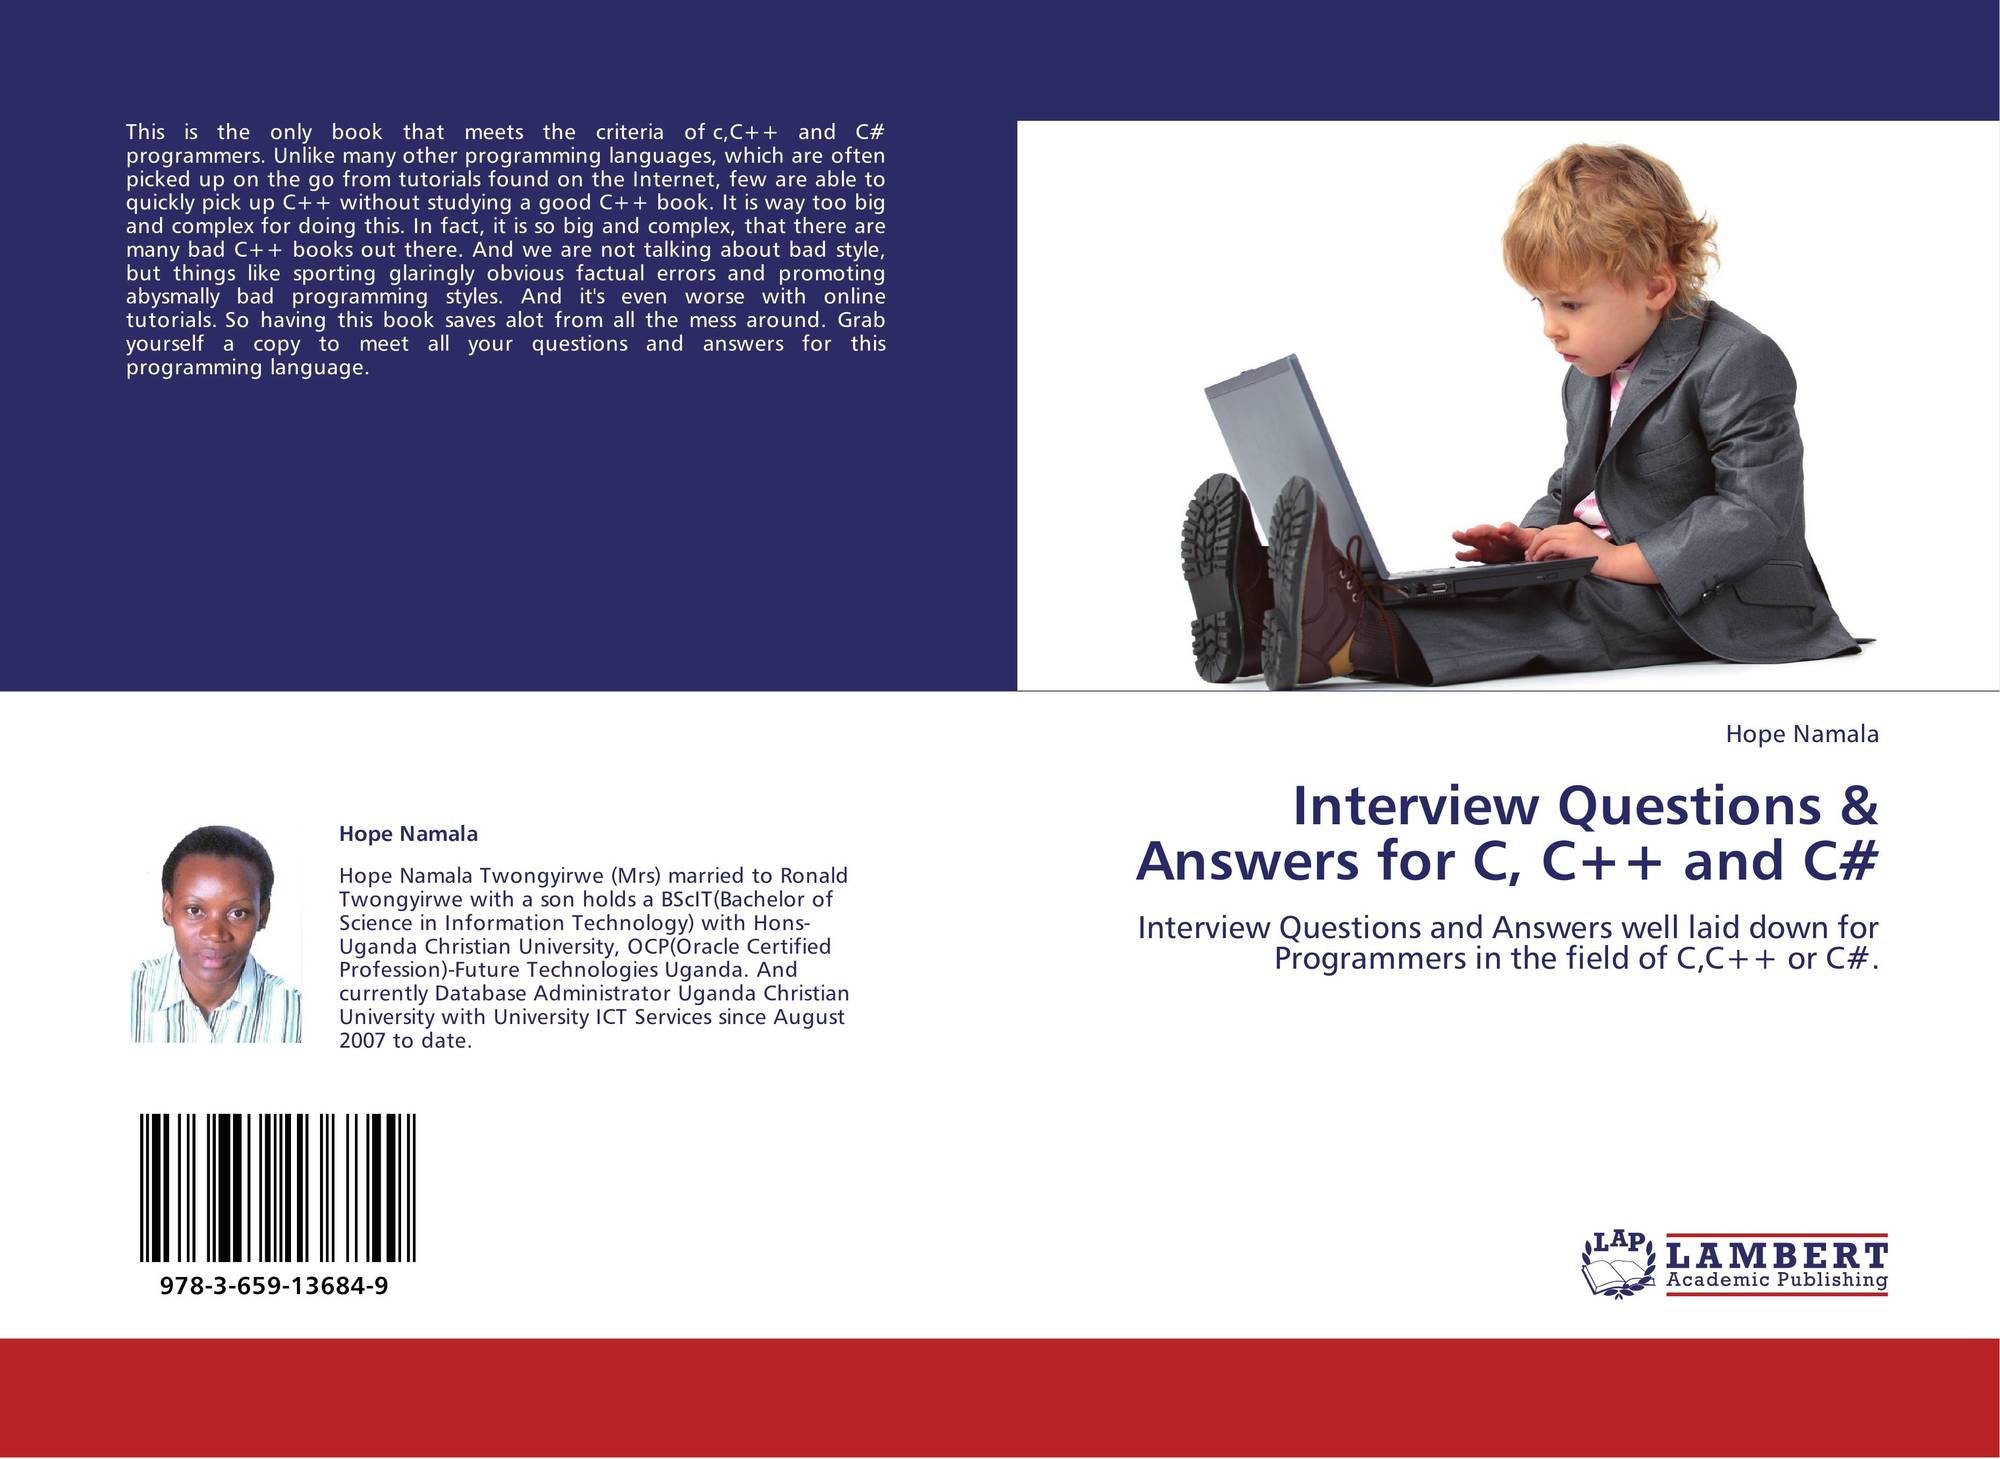 C# interview questions and answers